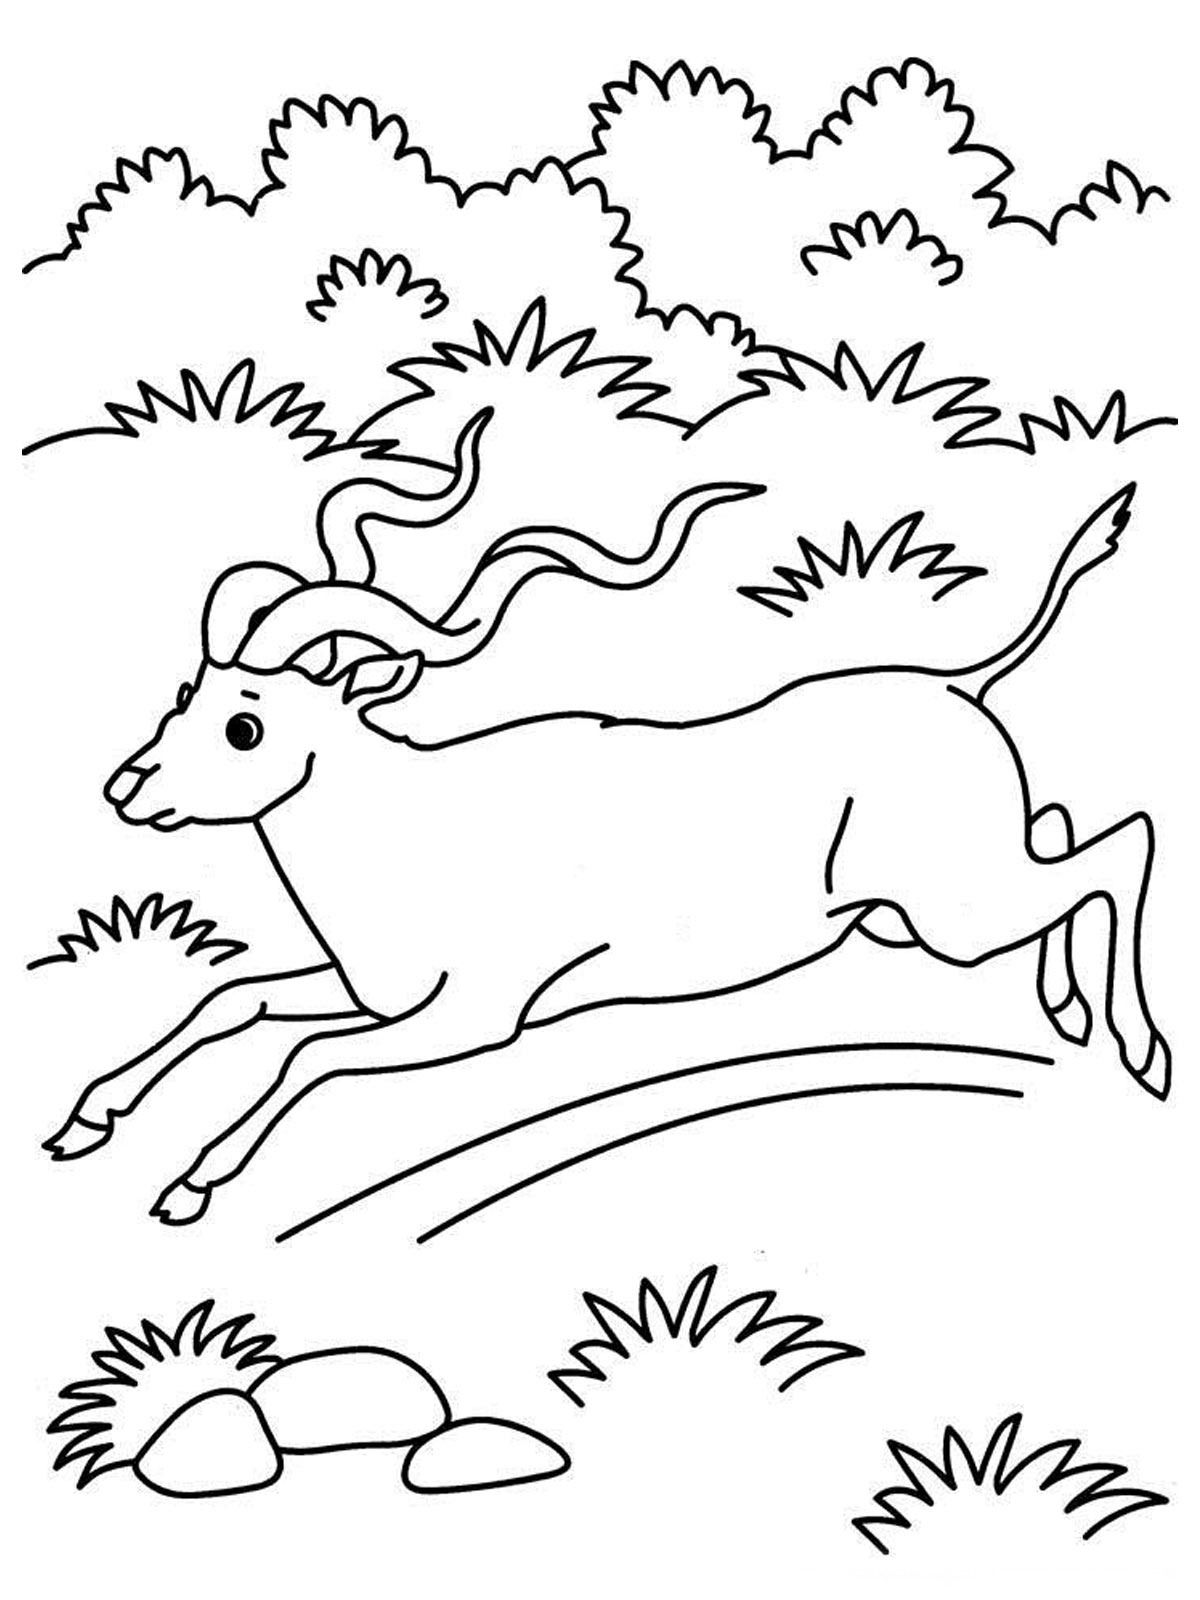 Antelope Coloring Pages Realistic Coloring Pages Coloring Pages